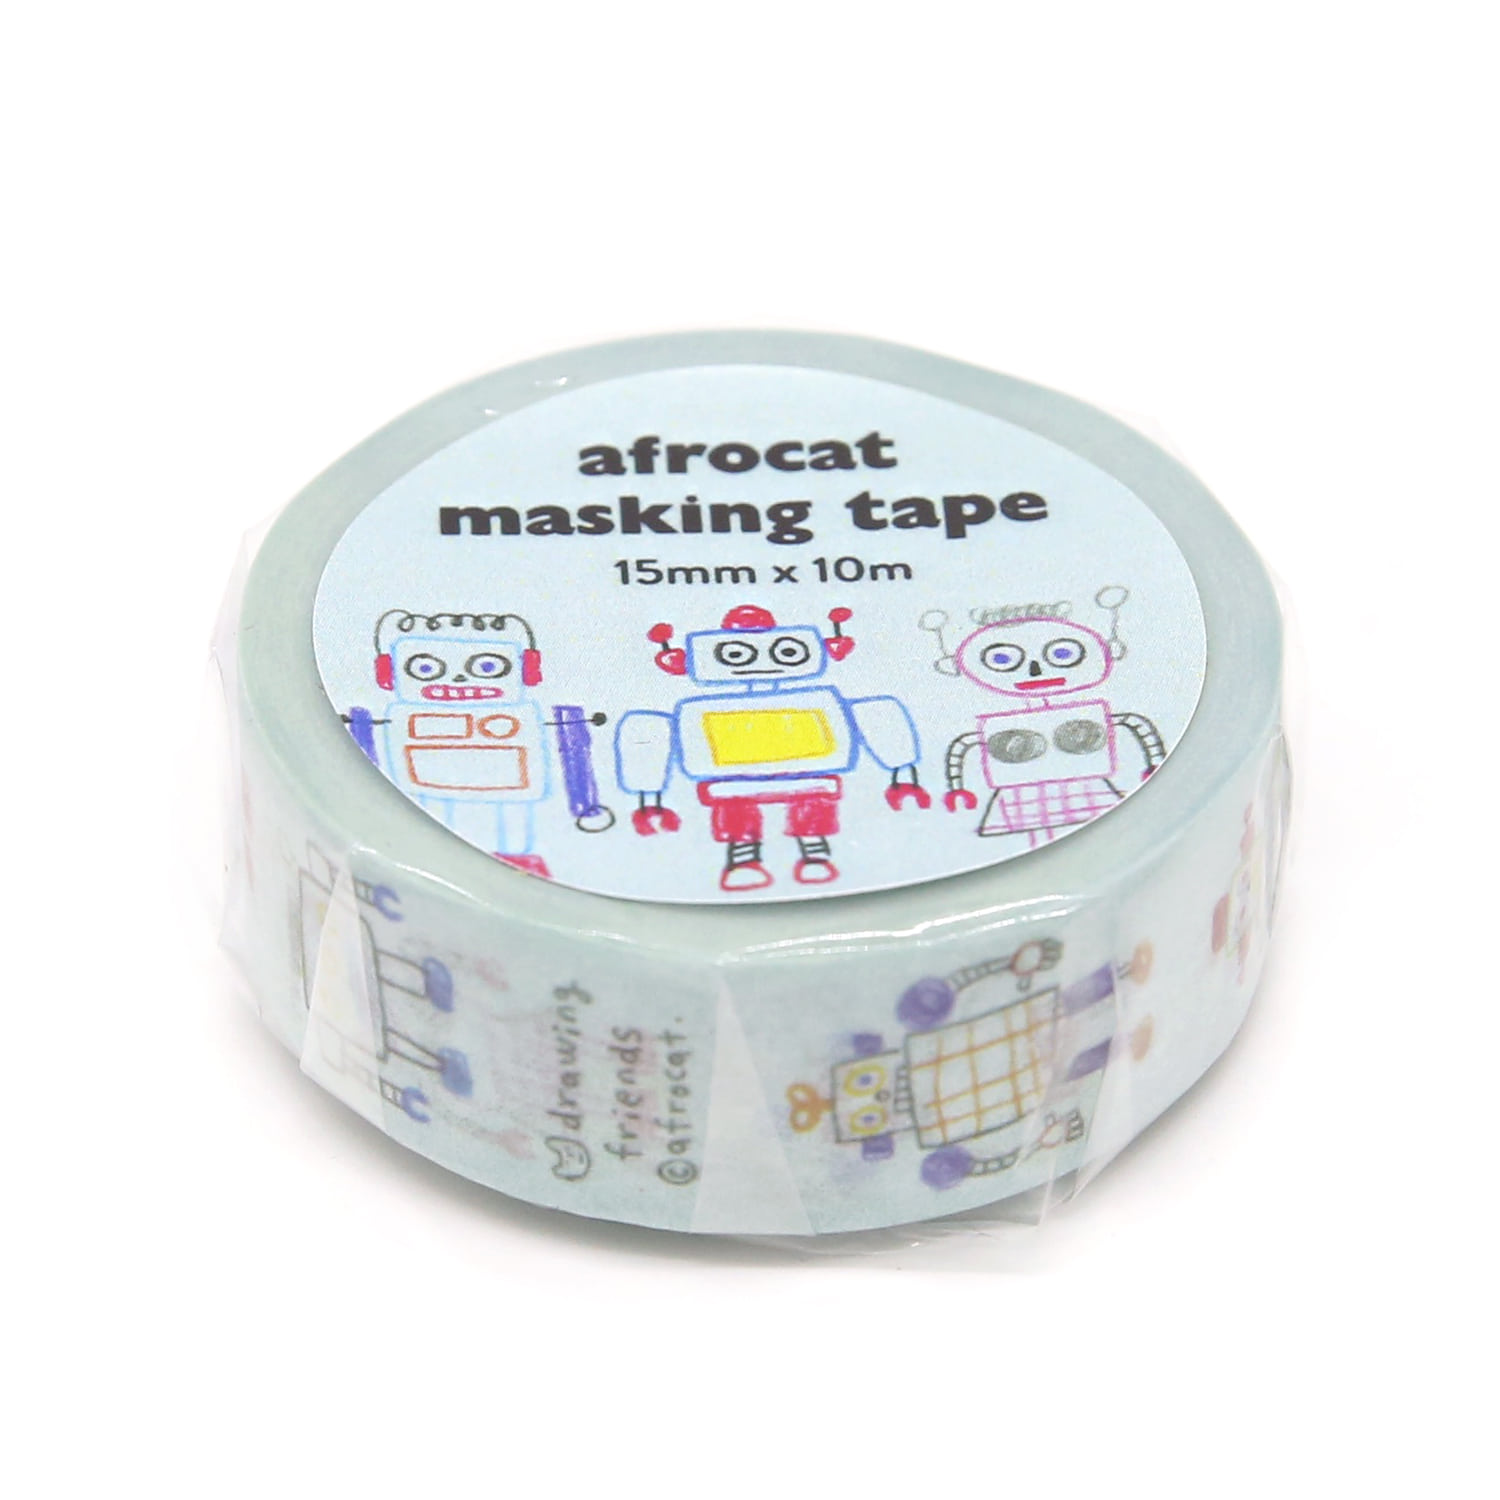 [afrocat masking tape] 10. Drawing friends_robot 15mm